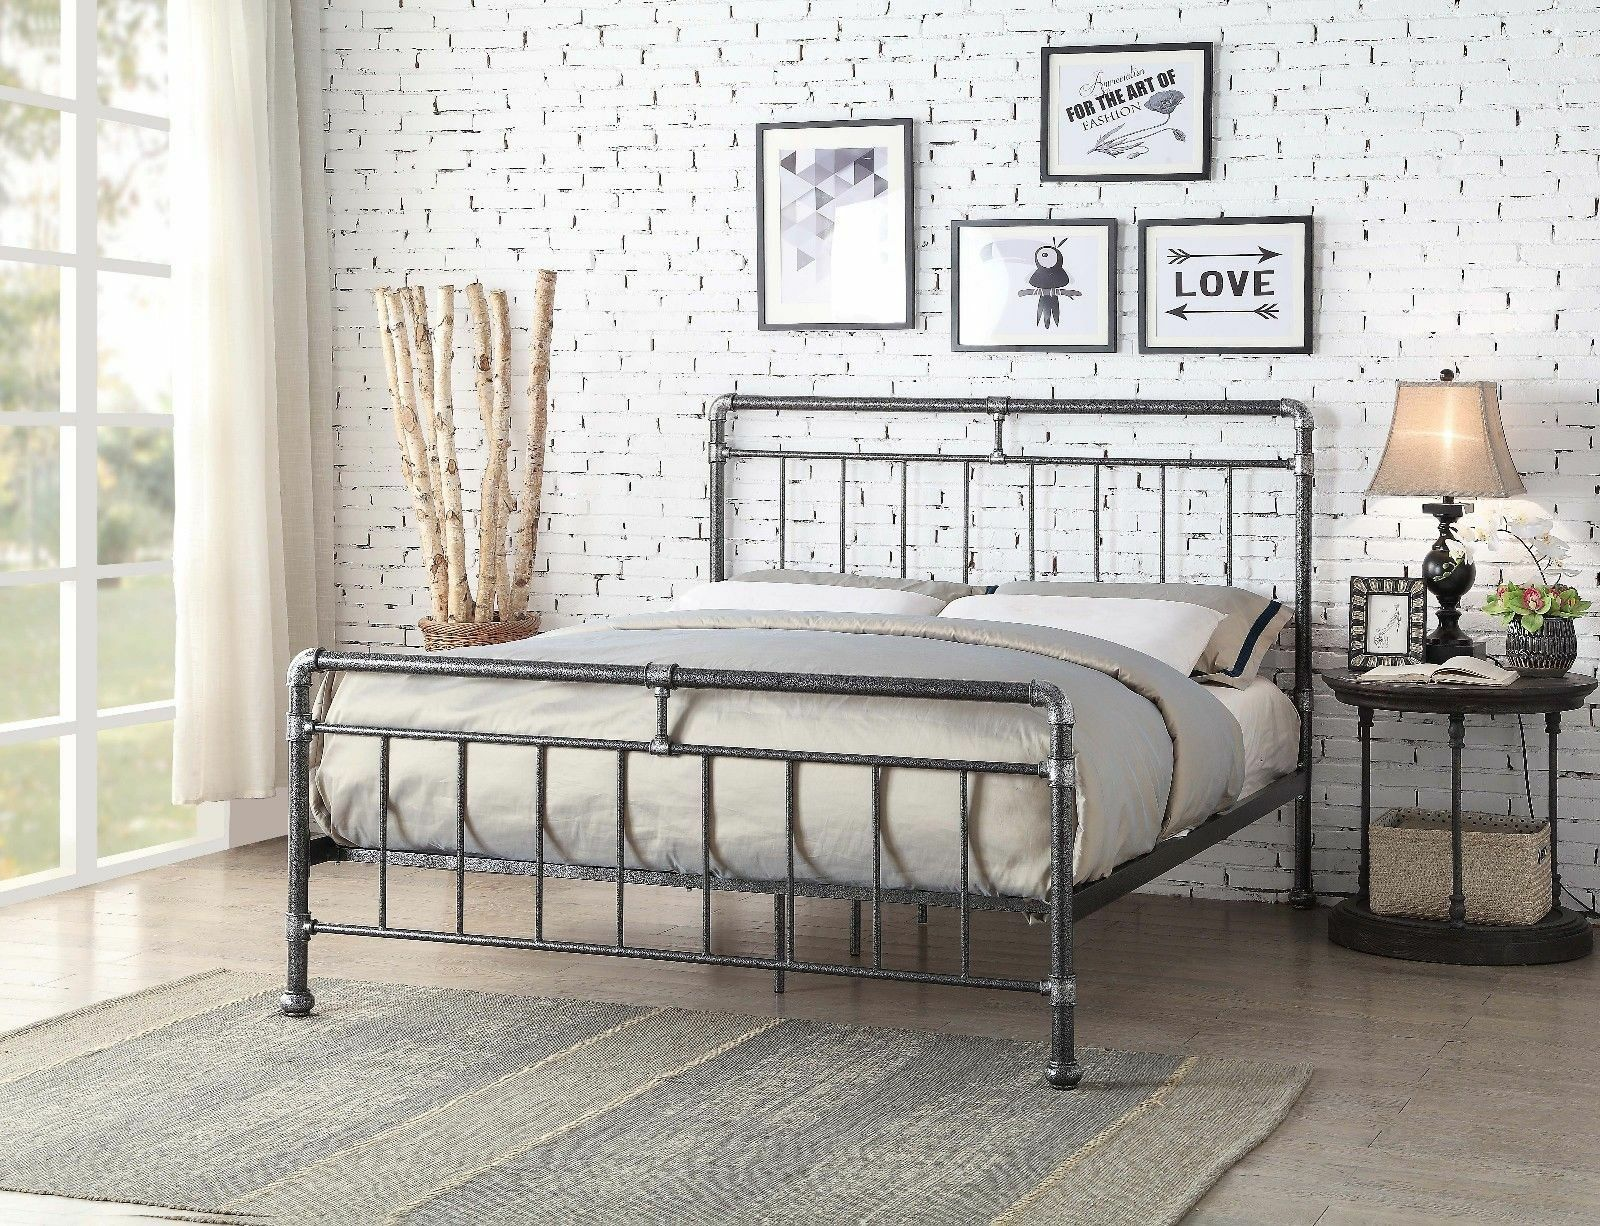 Vintage Industrial Scaffold Style Metal Bed Frame 4FT6 Double Size